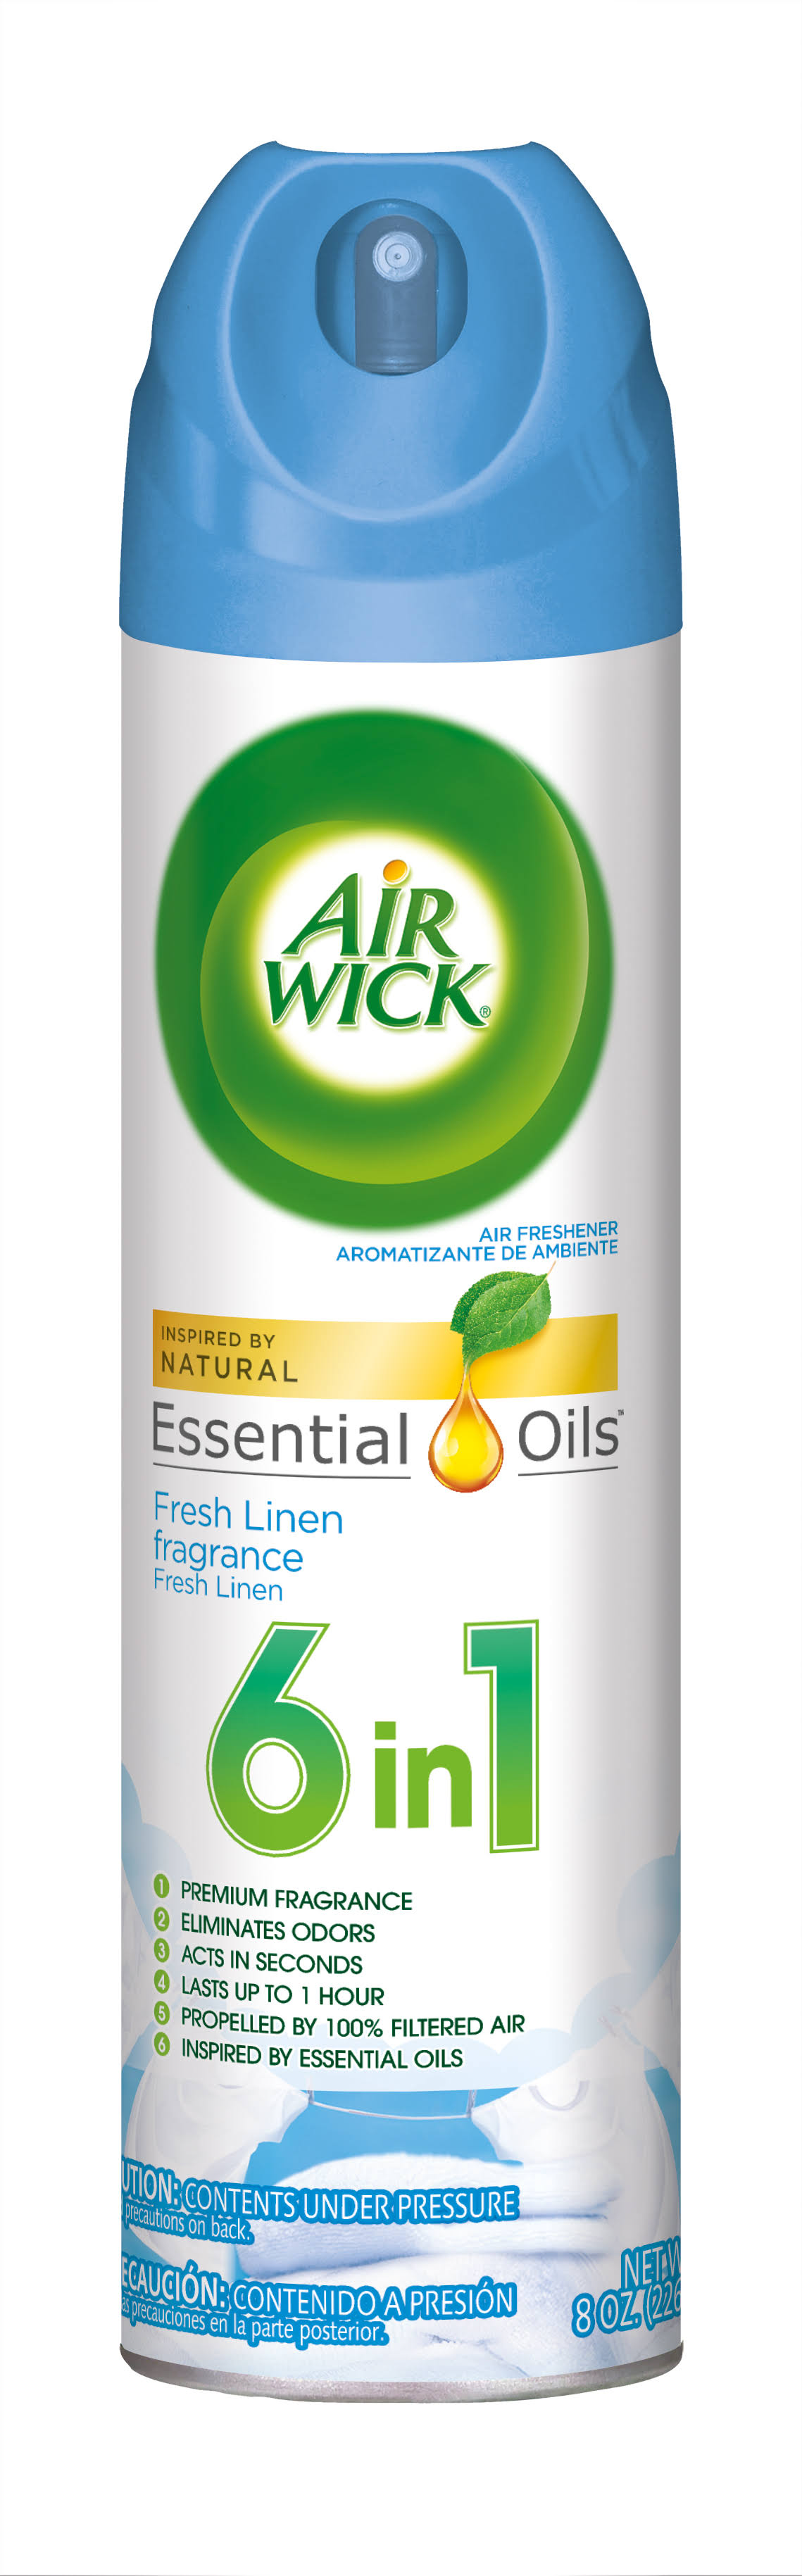 Air Wick Air Freshener Spray - Cool Linen and White Lilac, 8oz